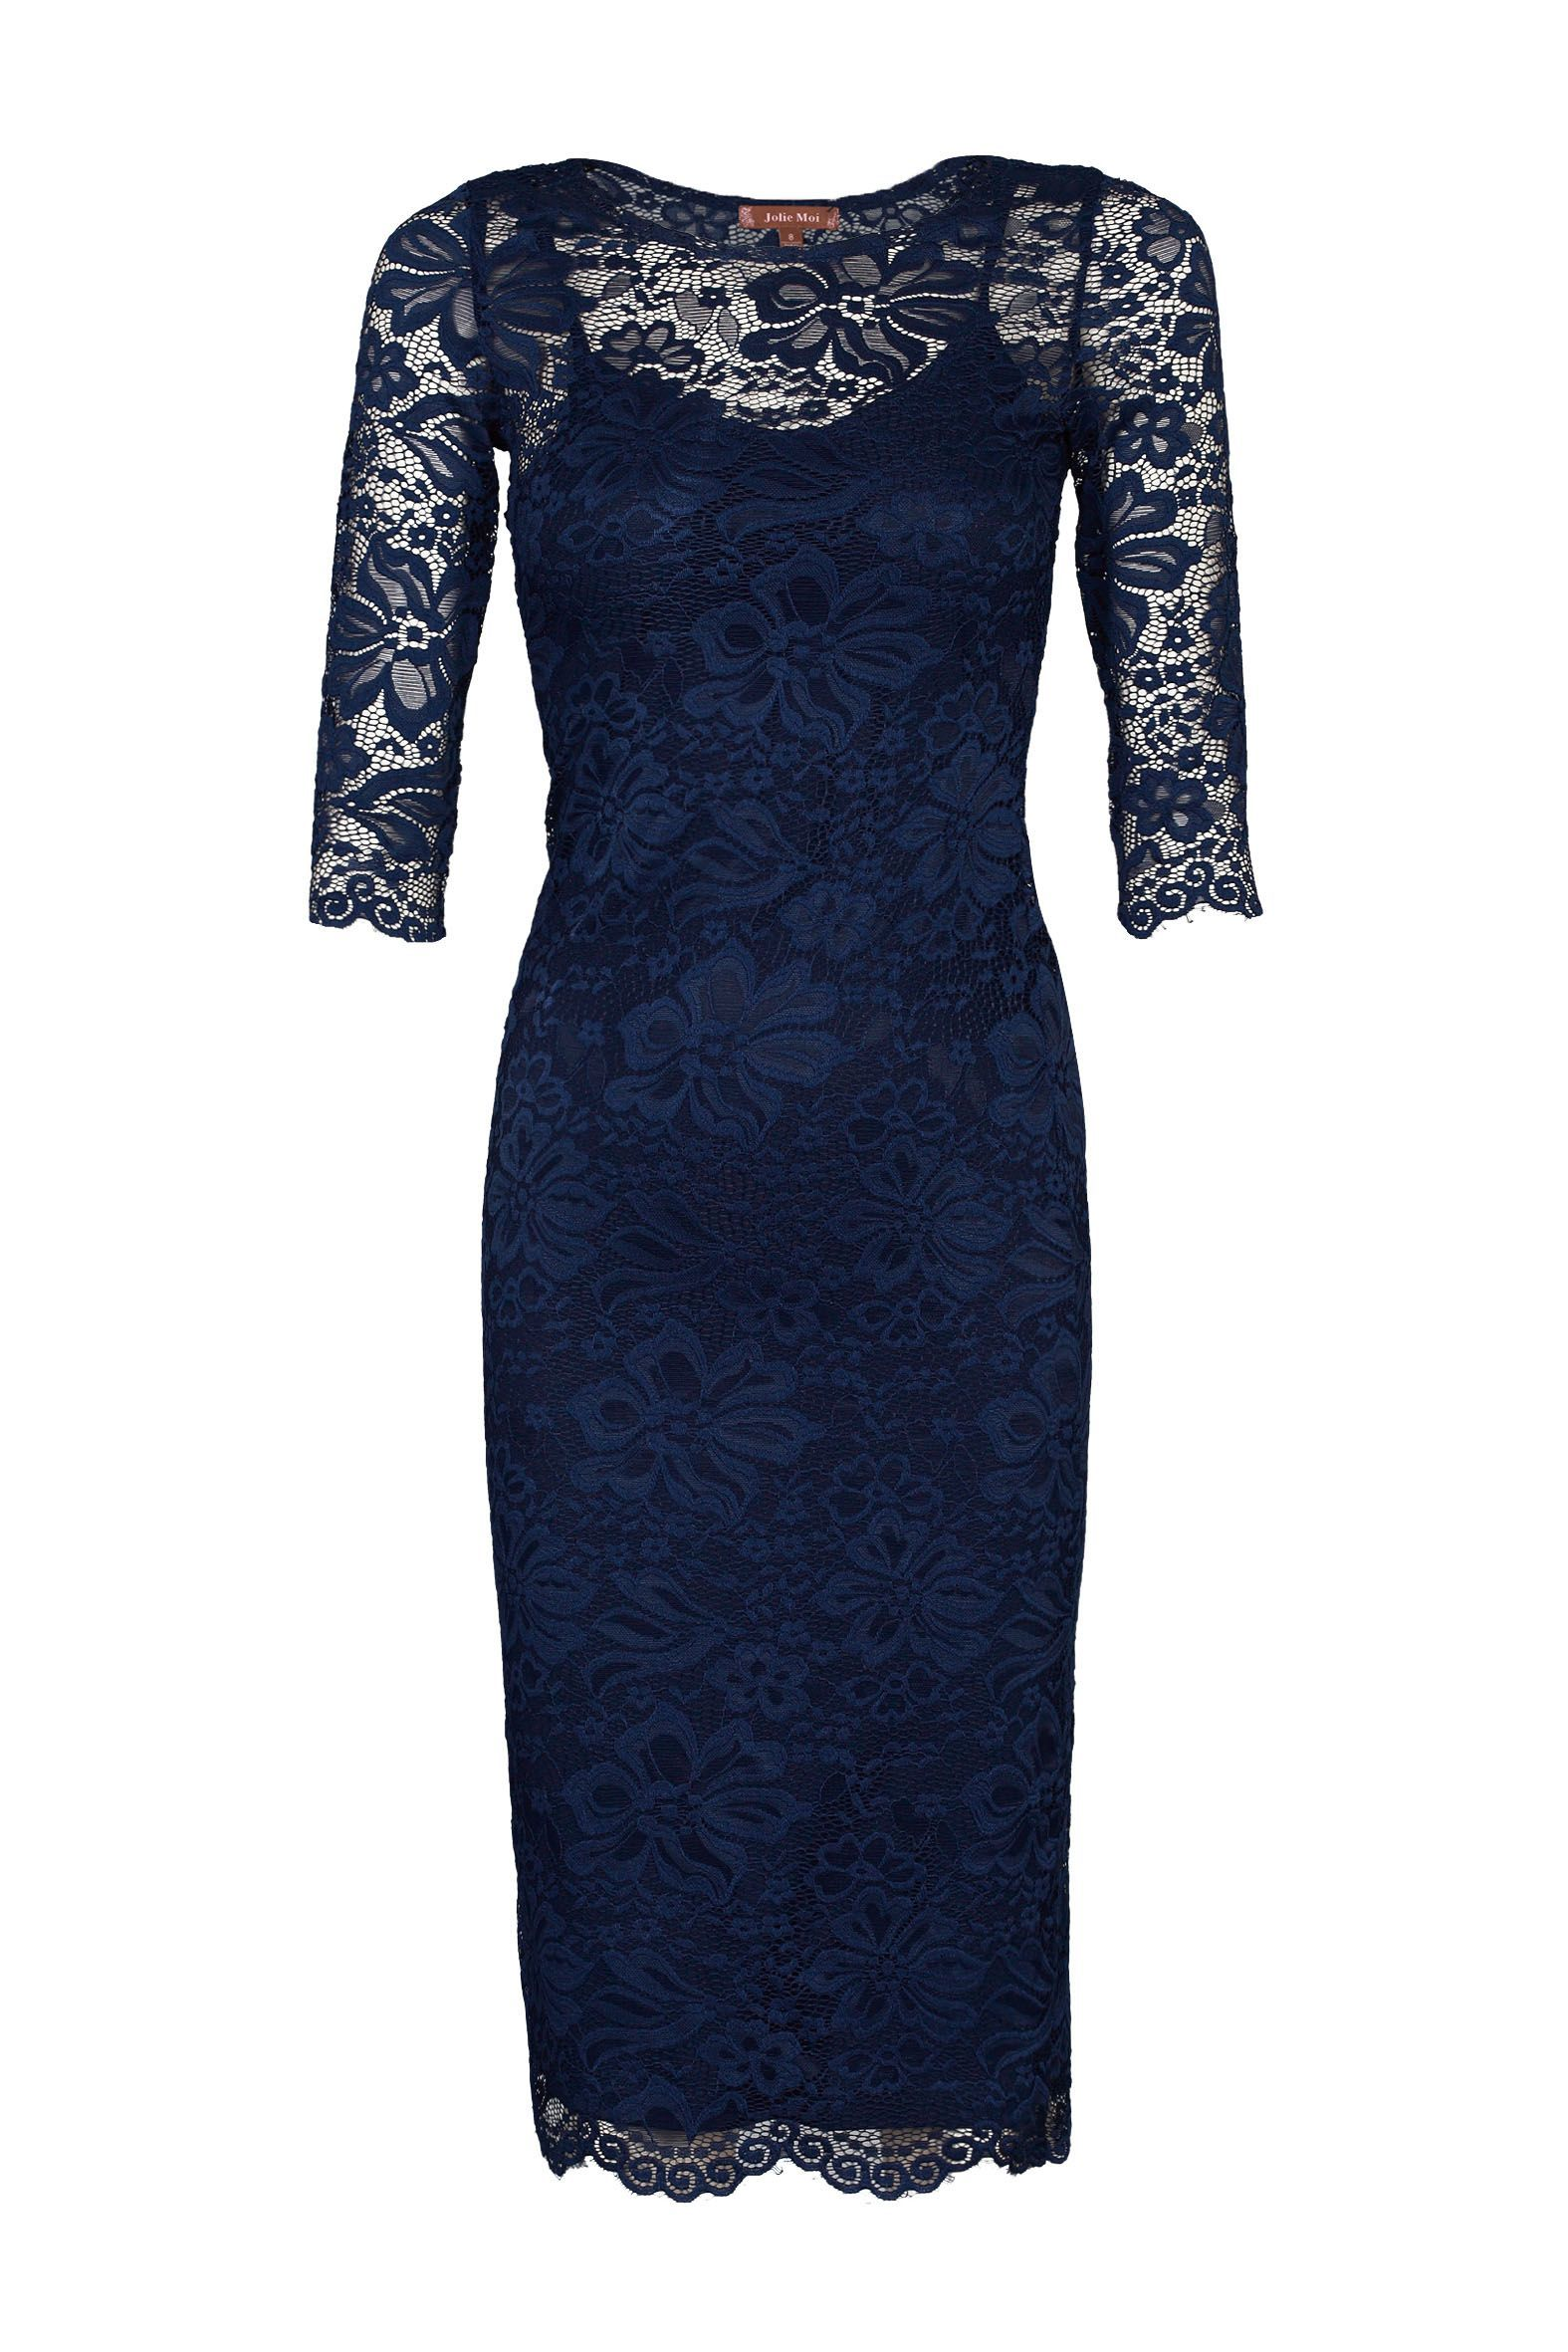 Lace dress navy  Executive Branches Dress In Navy  Info Once you add this navy